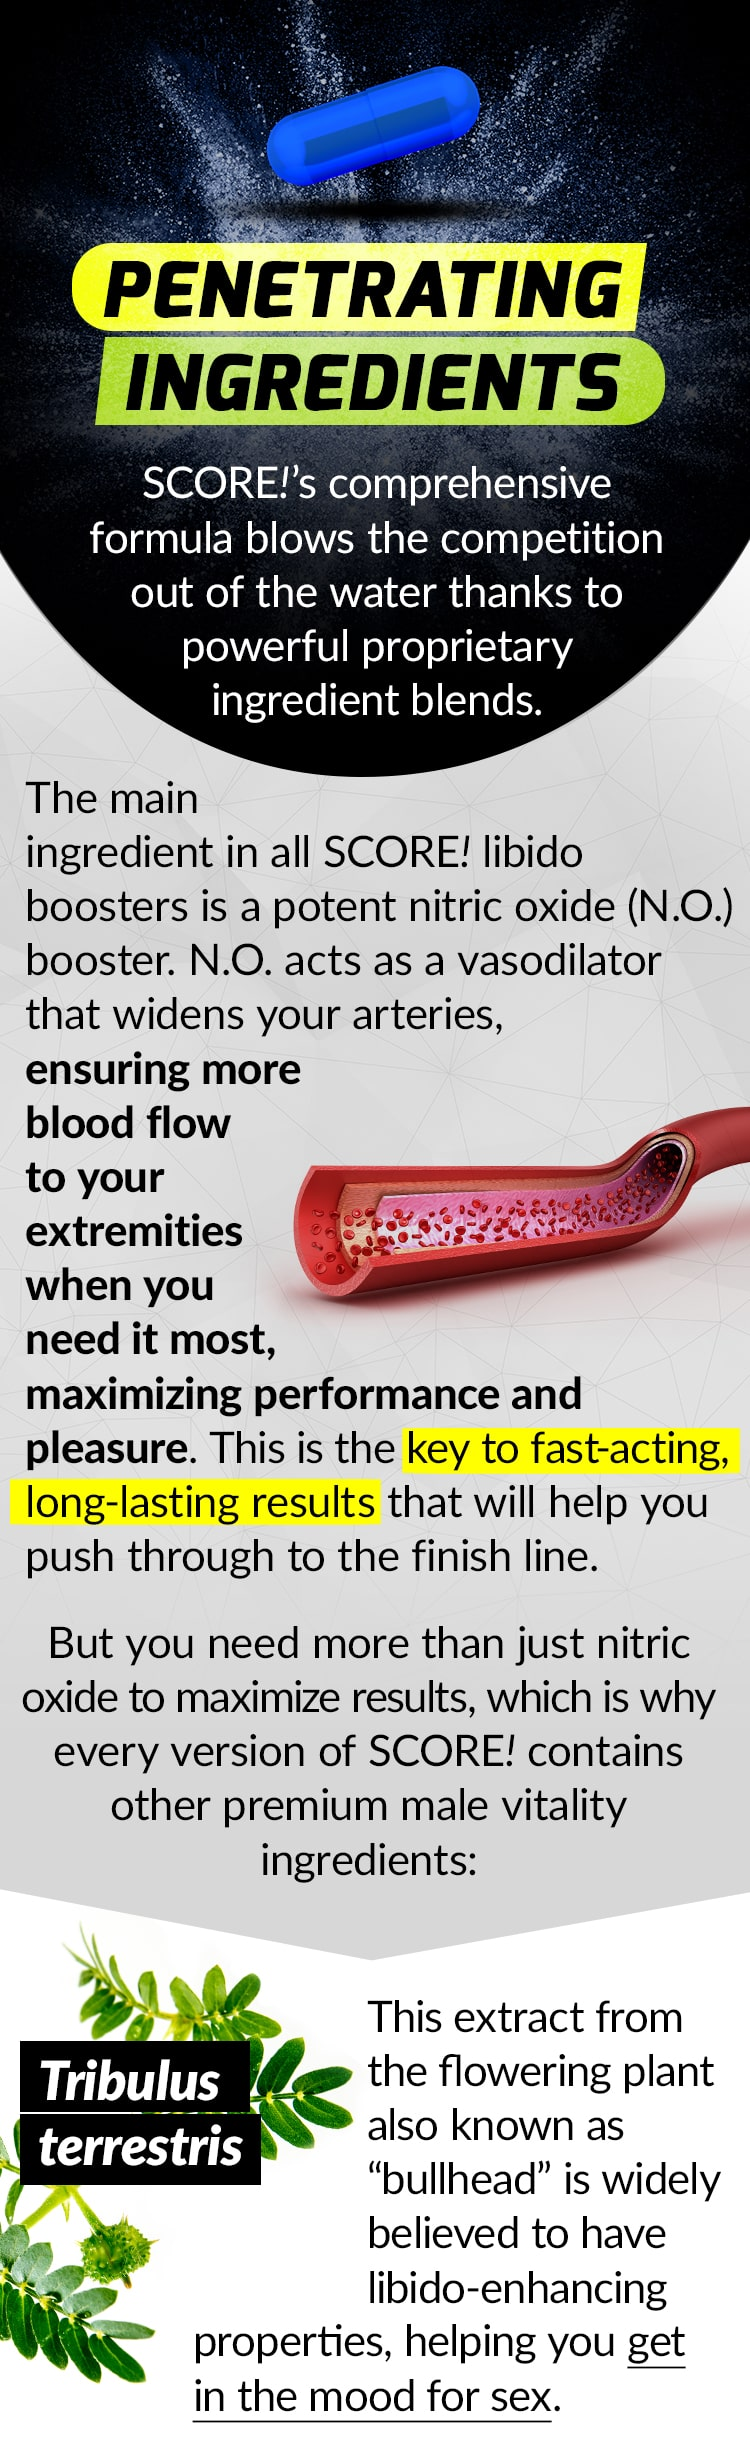 "PENETRATING INGREDIENTS. SCORE!'s comprehensive formulas blow the competition out of the water thanks to powerful proprietary ingredient blends. The main ingredient in all SCORE! libido boosters is a potent nitric oxide (N.O.) booster. N.O. acts as a vasodilator that widens your arteries, ensuring more blood flow to your extremities when you need it most, maximizing performance and pleasure. This is the key to fast-acting, long-lasting results that will help you push through to the finish line. But you need more than just nitric oxide to maximize results, which is why every version of SCORE! contains other premium male vitality ingredients.: Tribulus terrestris - This extract from the flowering plant also known as ""bullhead"" is widely believed to have libido-enhancing properties, helping you get in the mood for sex."